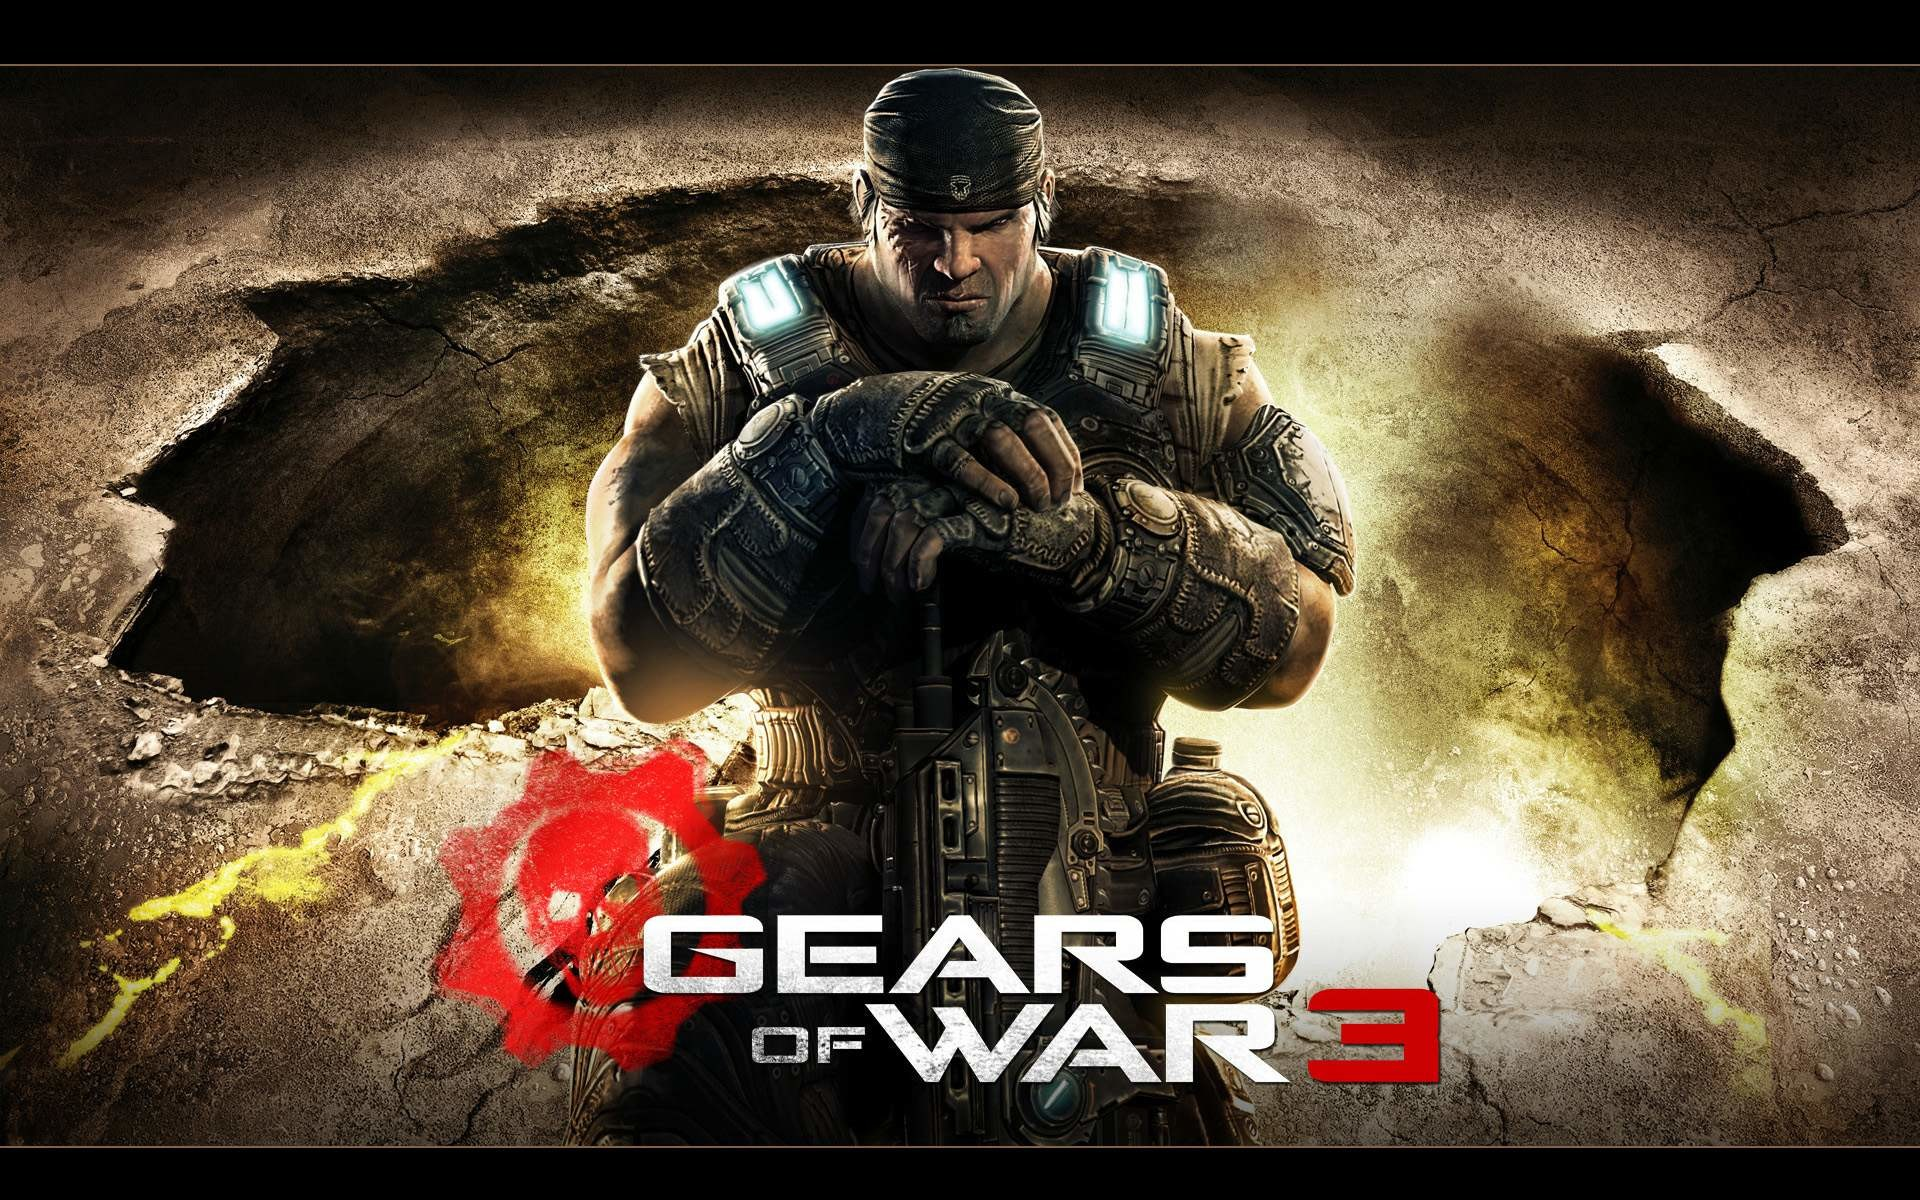 1920x1200 Gears of War 3 Wallpaper 1080p